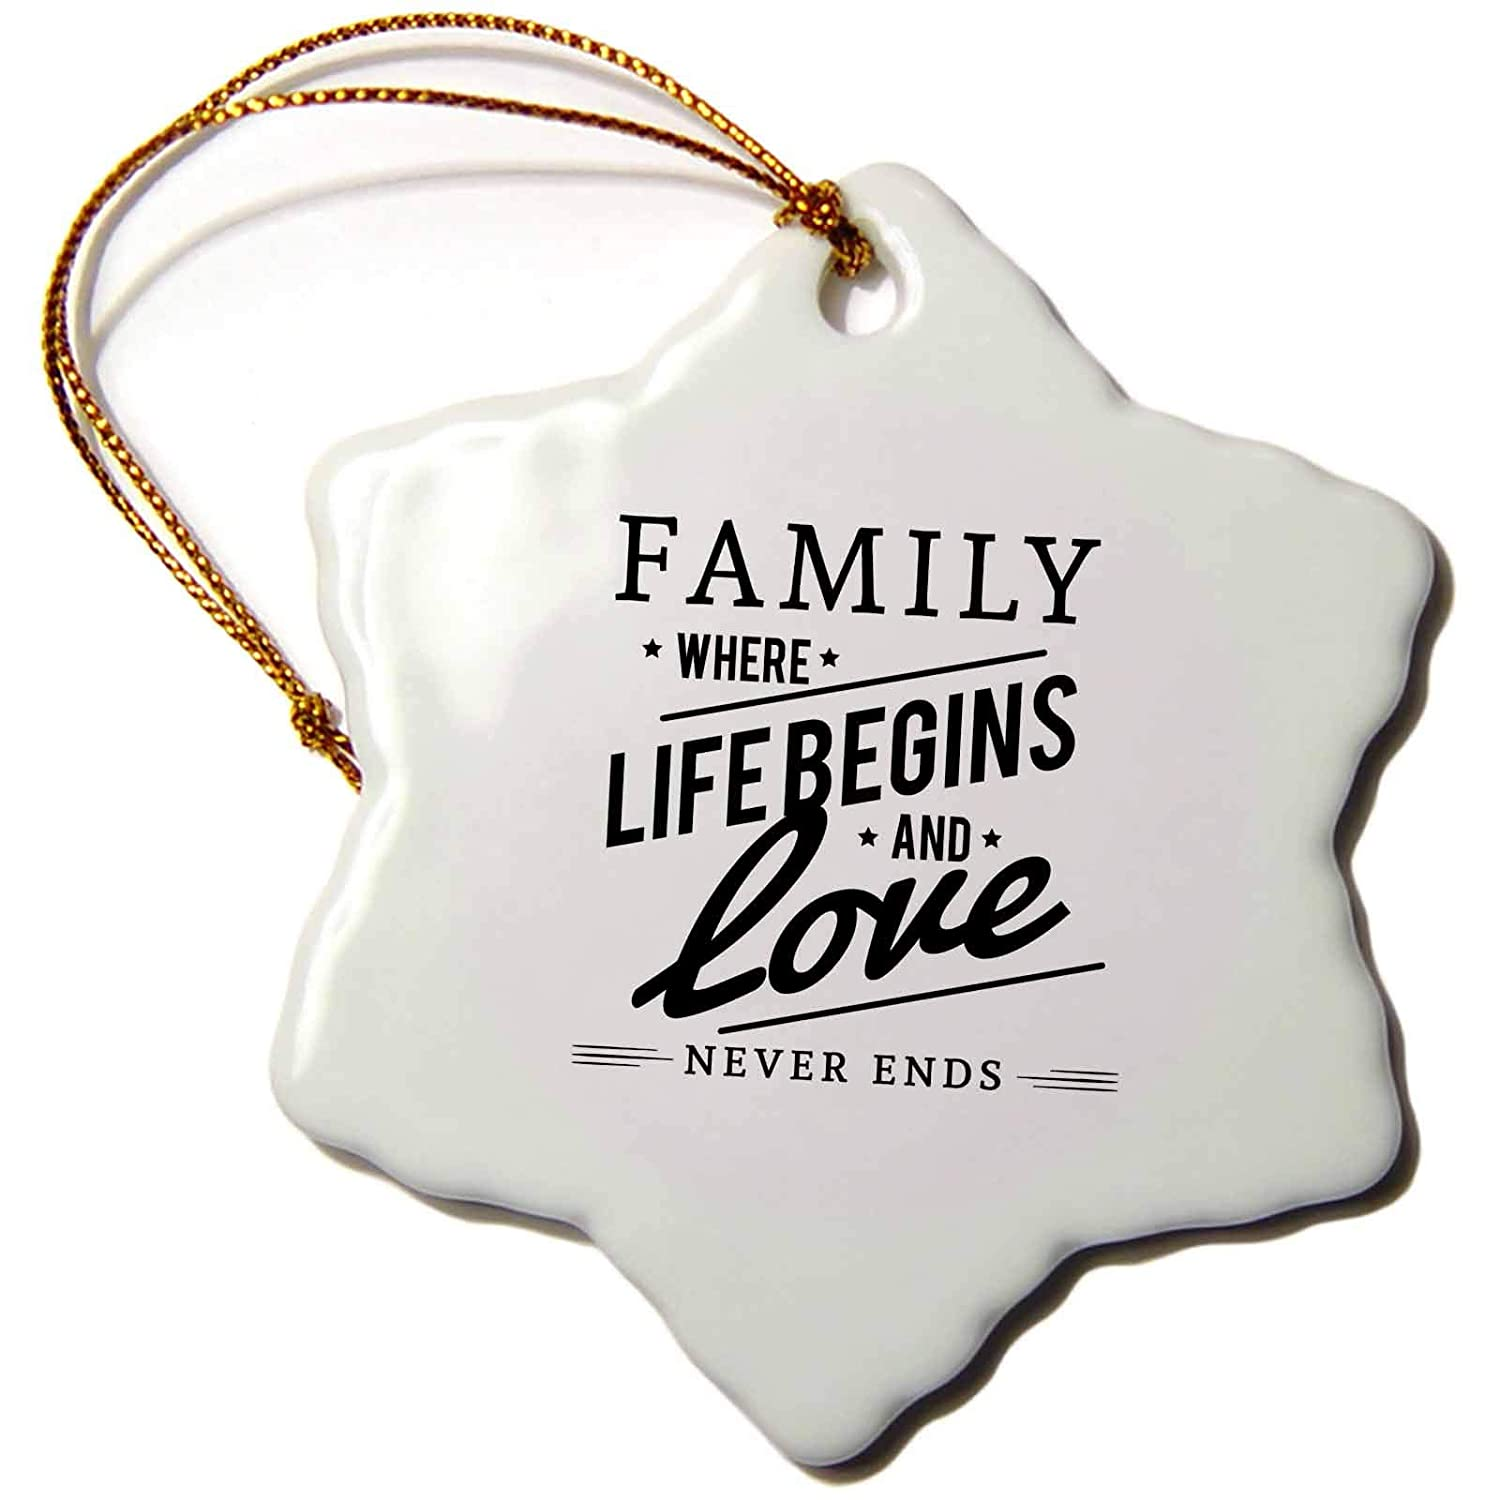 ORN/_254154/_1 3 inch Snowflake Porcelain Ornament Family Where Life Begins and Love Never Ends 3dRose Sven Herkenrath Letters